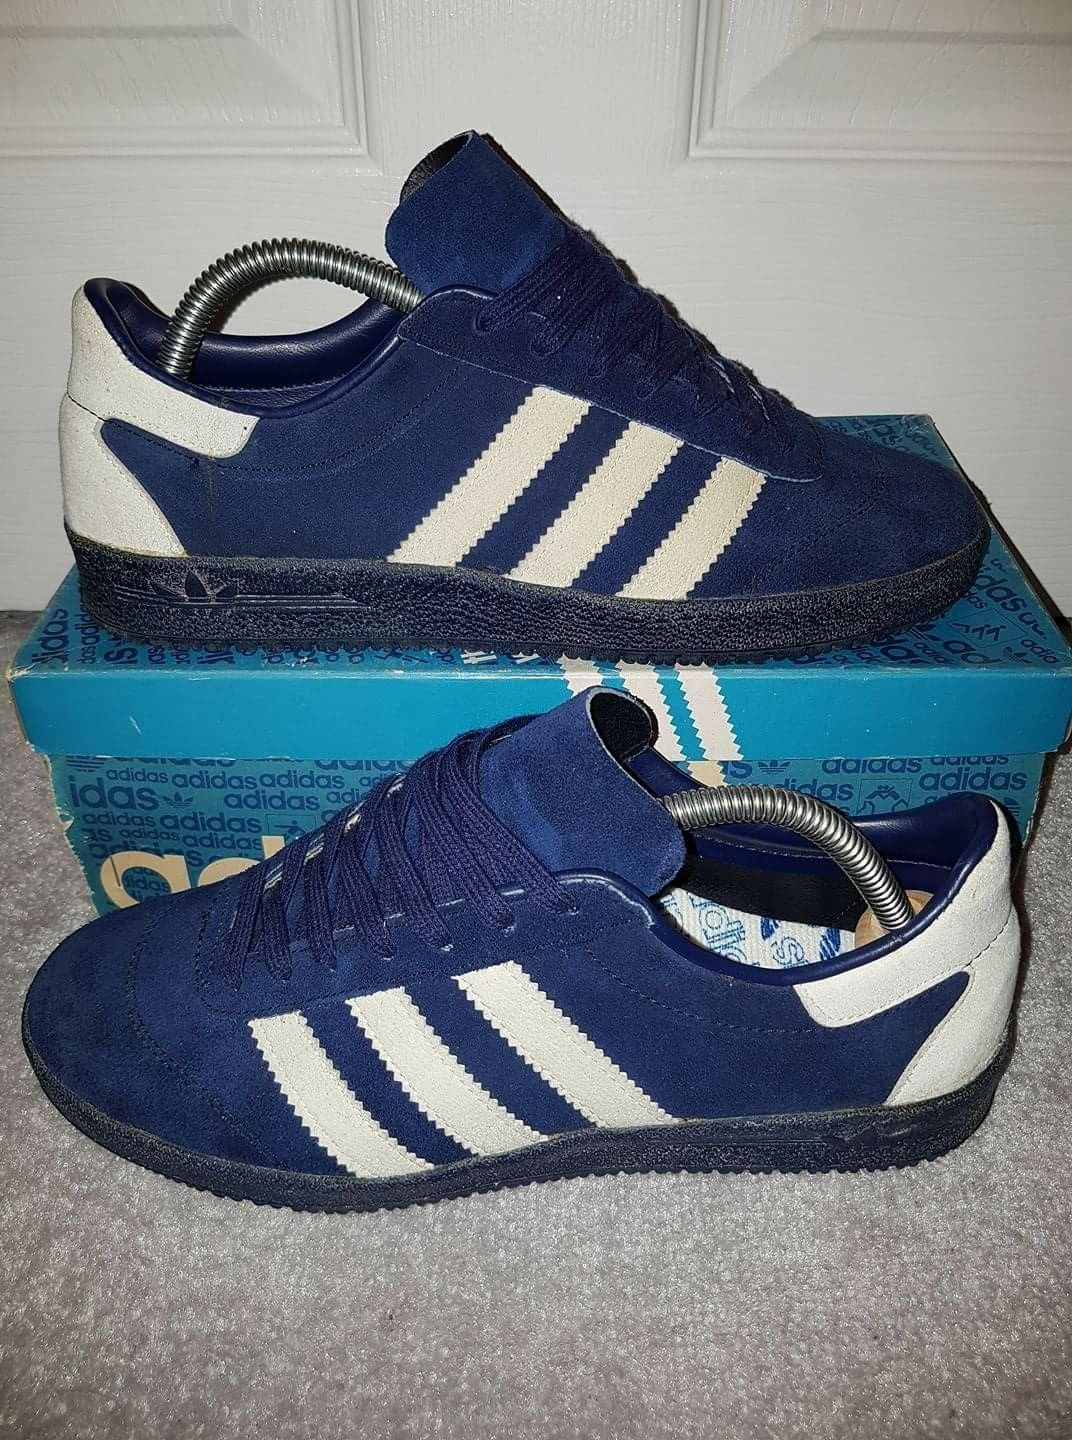 8f05cf4617a31 Adidas Gaucho made in France these are the template for the new Spezial  AW17 release Intack